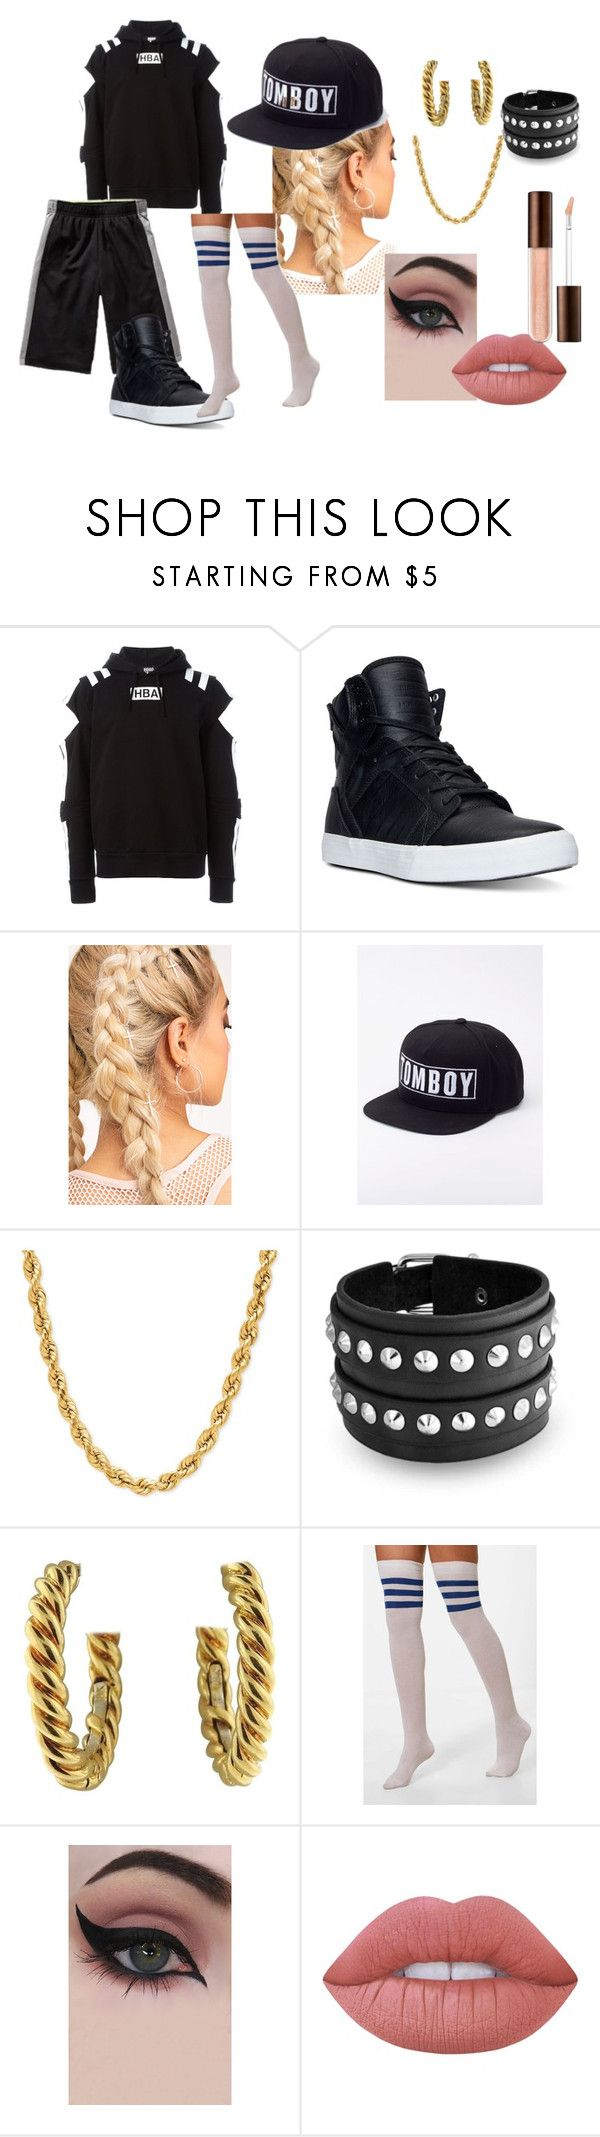 """No More Dream - Areum's Outfit"" by huntress-rose ❤ liked on Polyvore featuring Hood by Air, Old Navy, Supra, Wildfang, Bling Jewelry, David Webb, Boohoo, Concrete Minerals and Lime Crime"